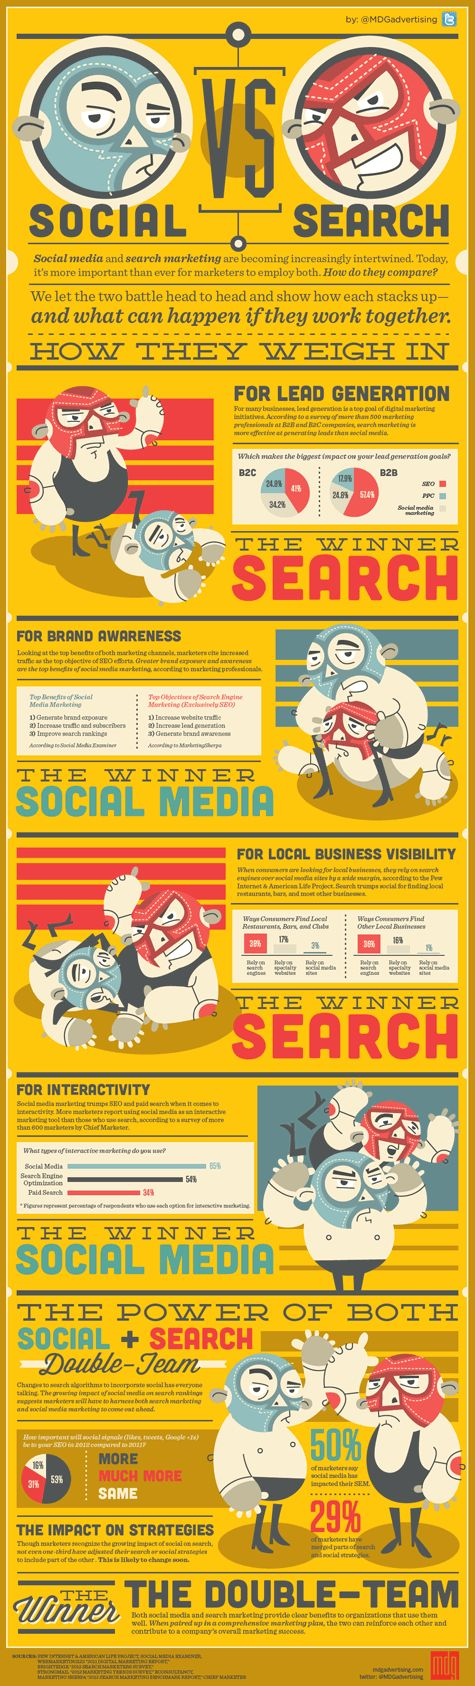 MDG Advertising looks at both sides of the fence, because as you'll see it's not all about SEO.